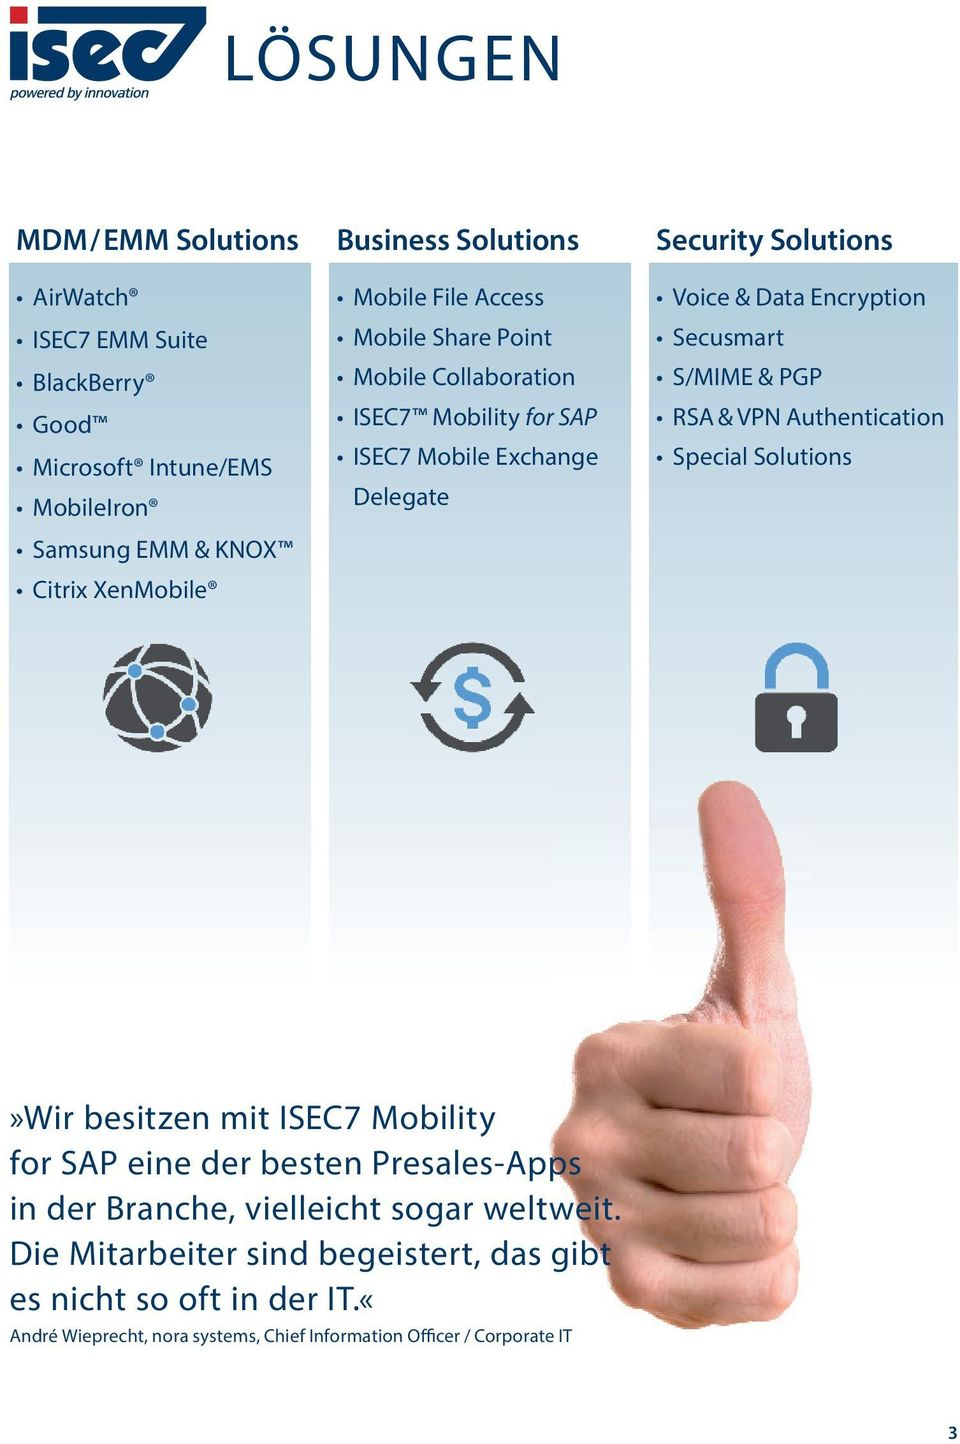 Secusmart S/MIME & PGP RSA & VPN Authentication Special Solutions»Wir besitzen mit ISEC7 Mobility for SAP eine der besten Presales-Apps in der Branche,